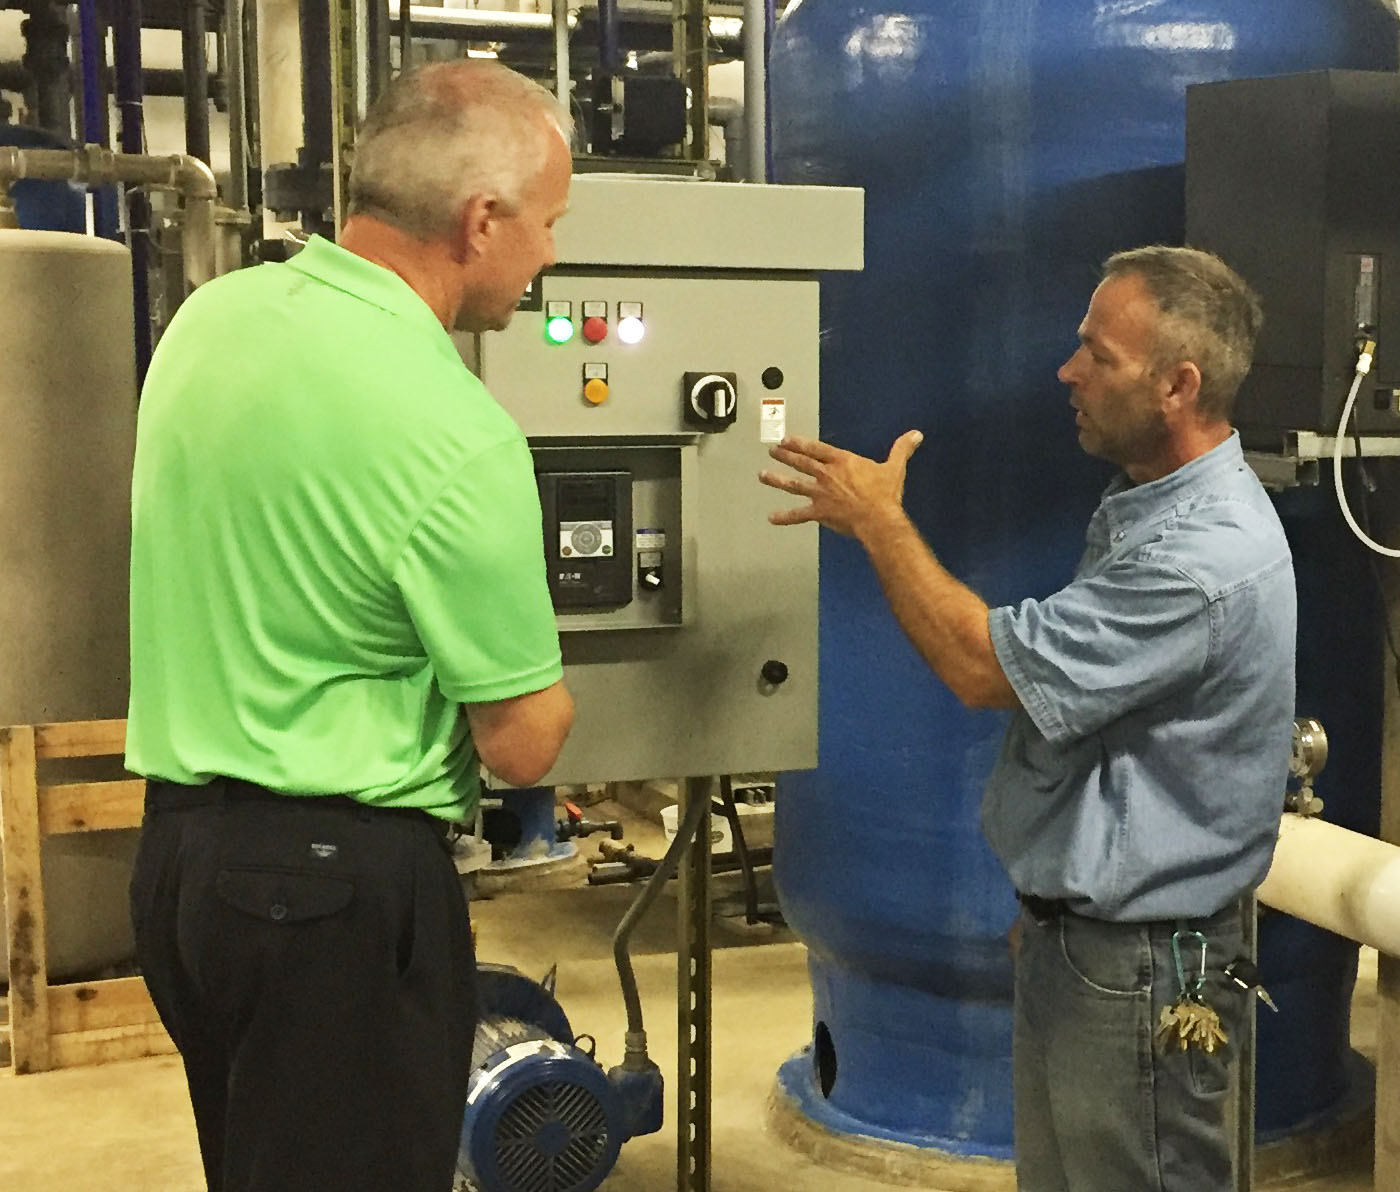 Doug Manders, Account Manager, discussing the Eaton VFD with Facilities Manager John Oglesby.